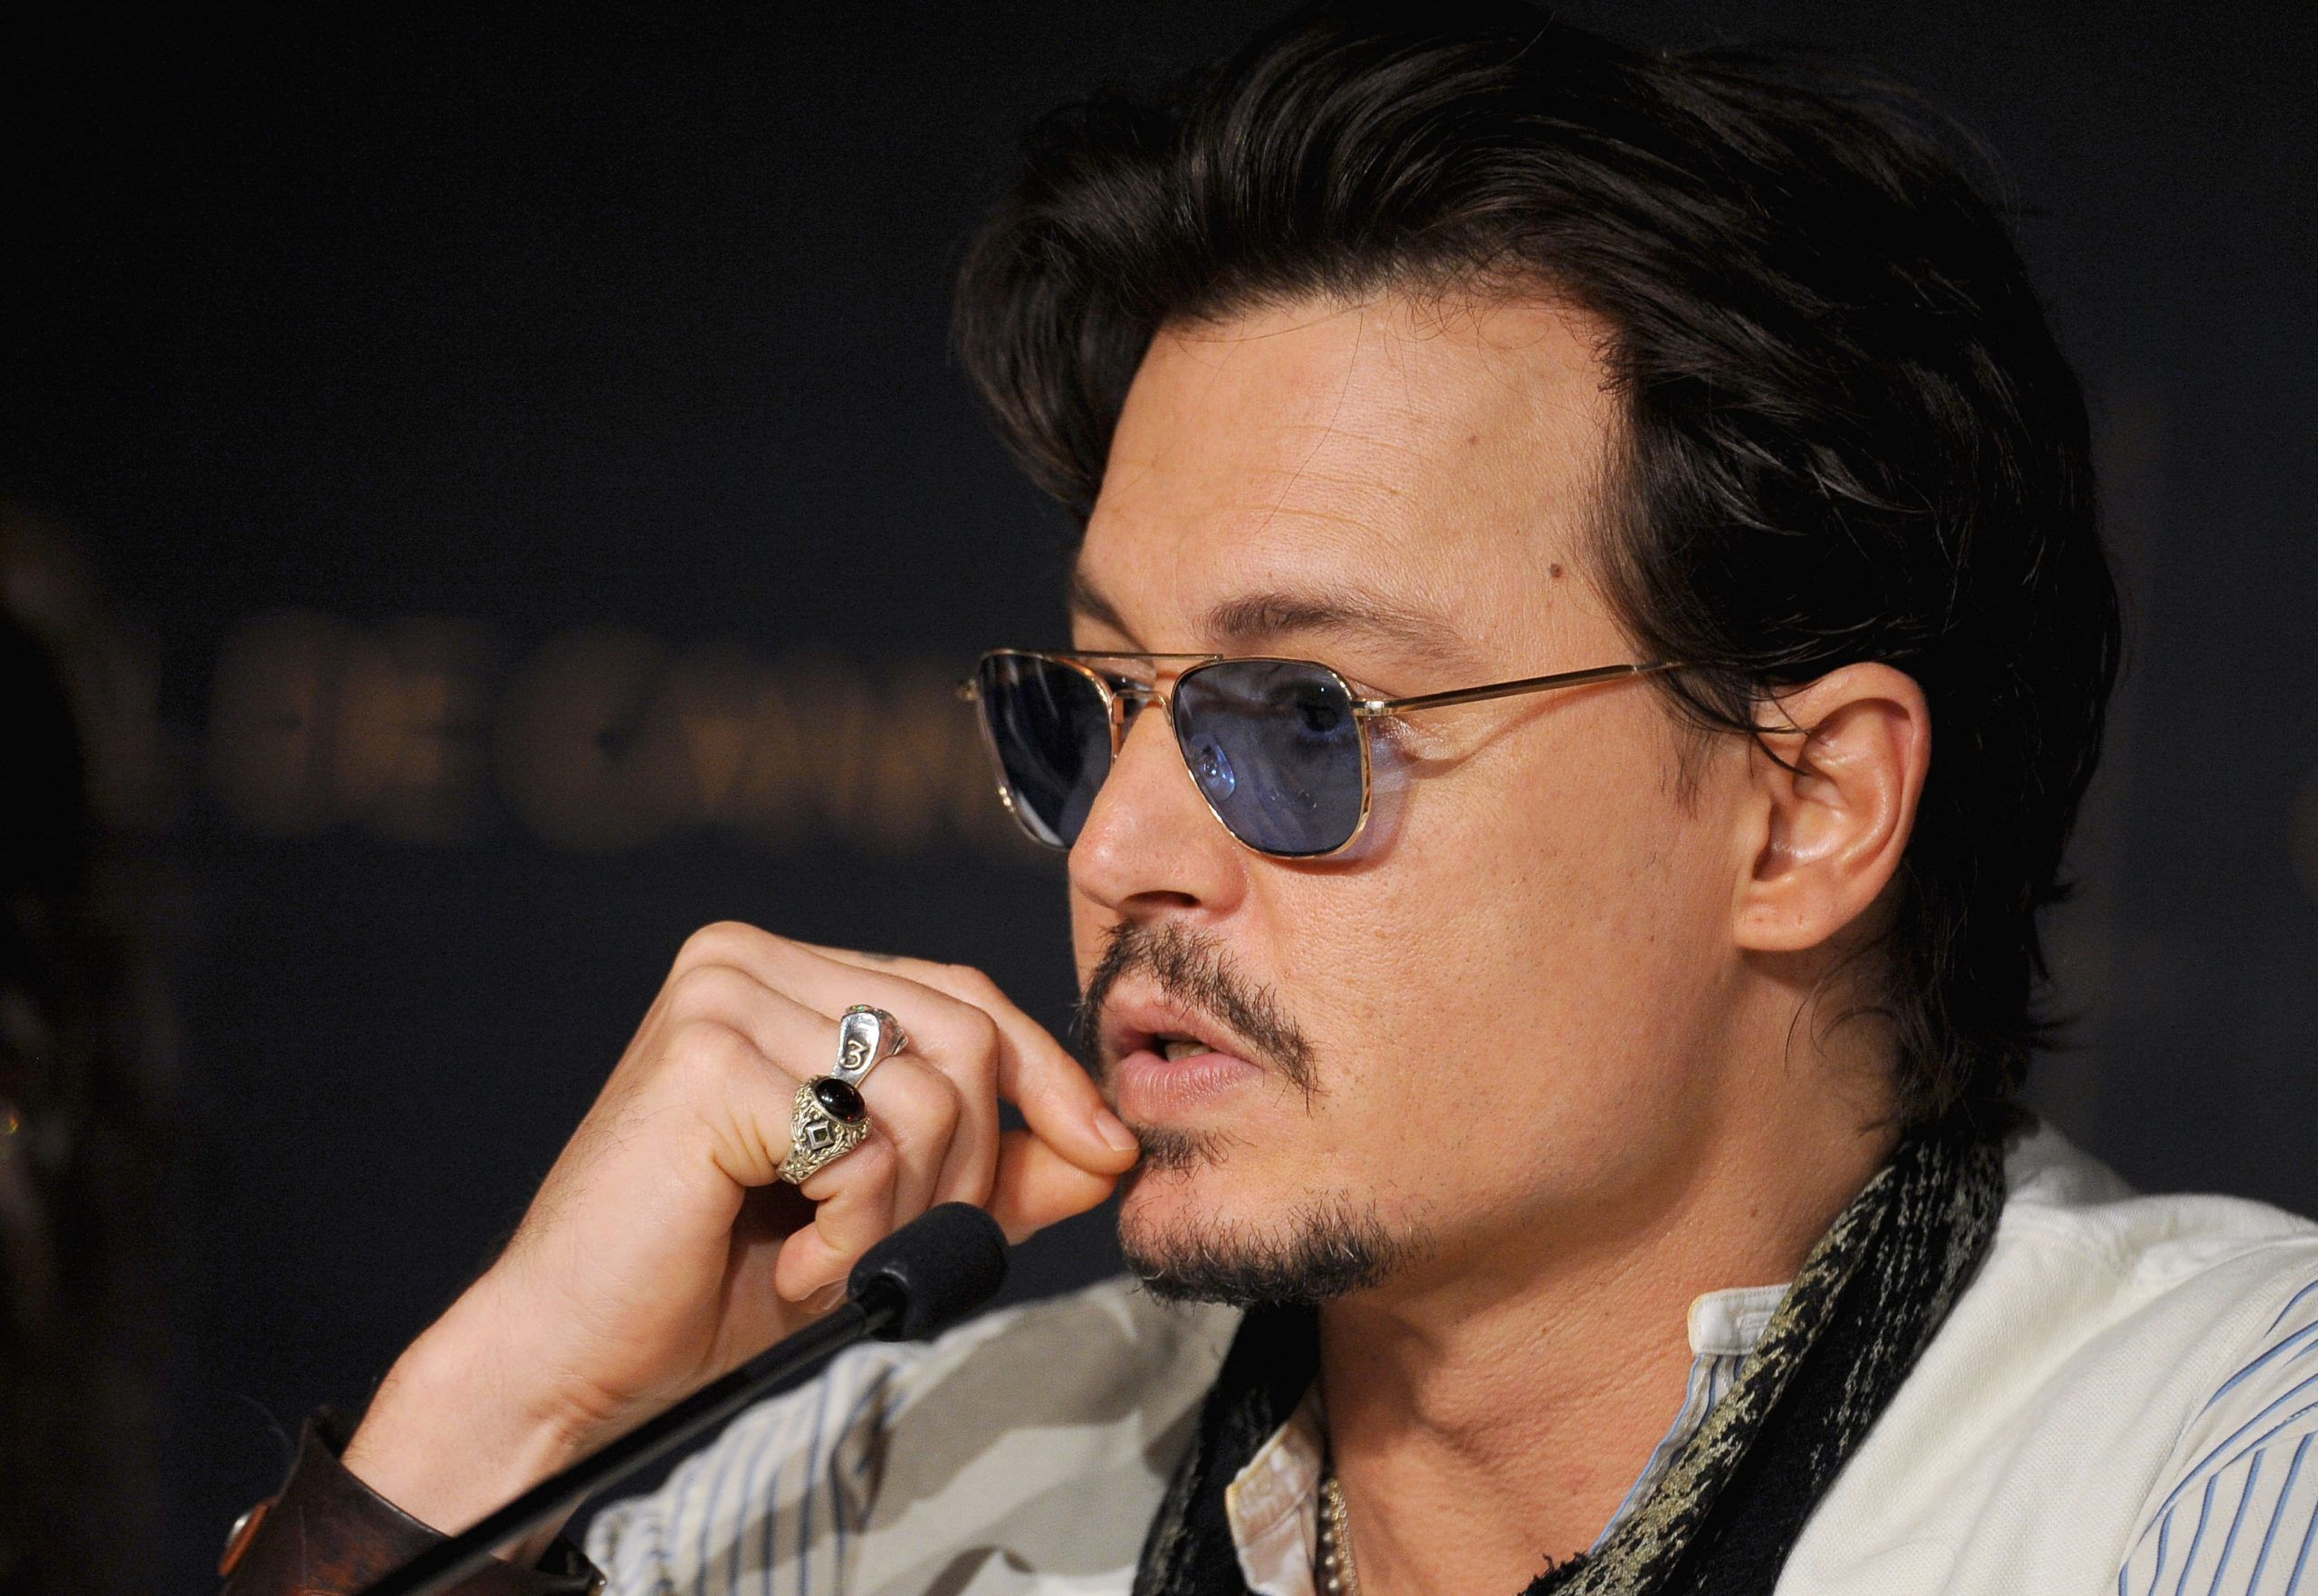 Johnny Depp ubriaco sul palco degli Hollywood Film Awards